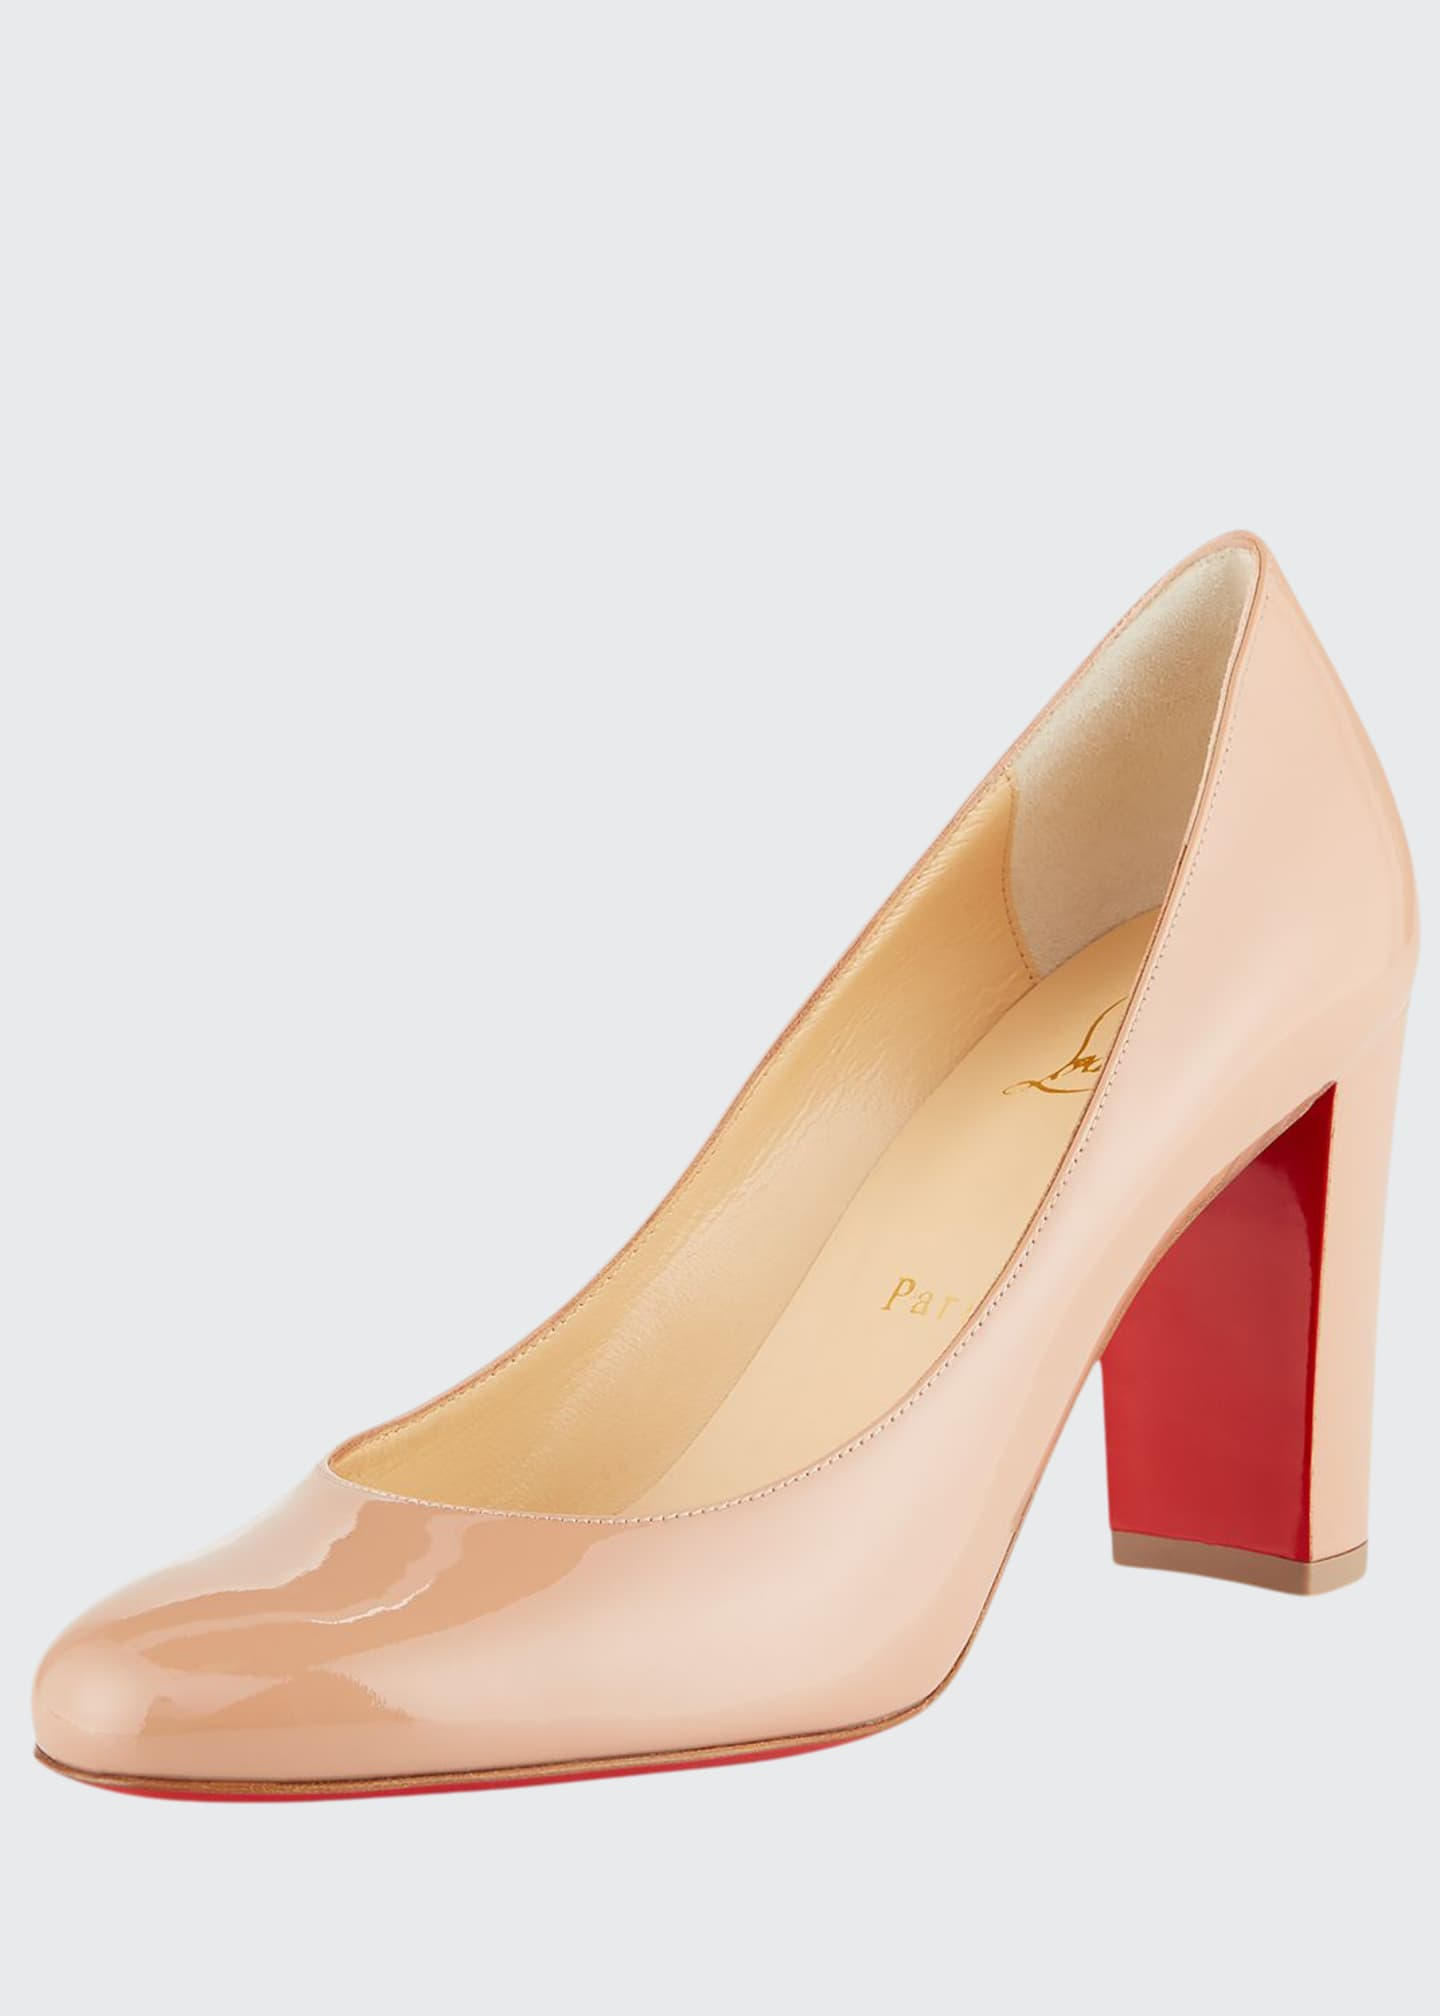 super cheap new lifestyle lowest price Christian Louboutin Lady Gena Patent Red Sole Pumps - Bergdorf Goodman